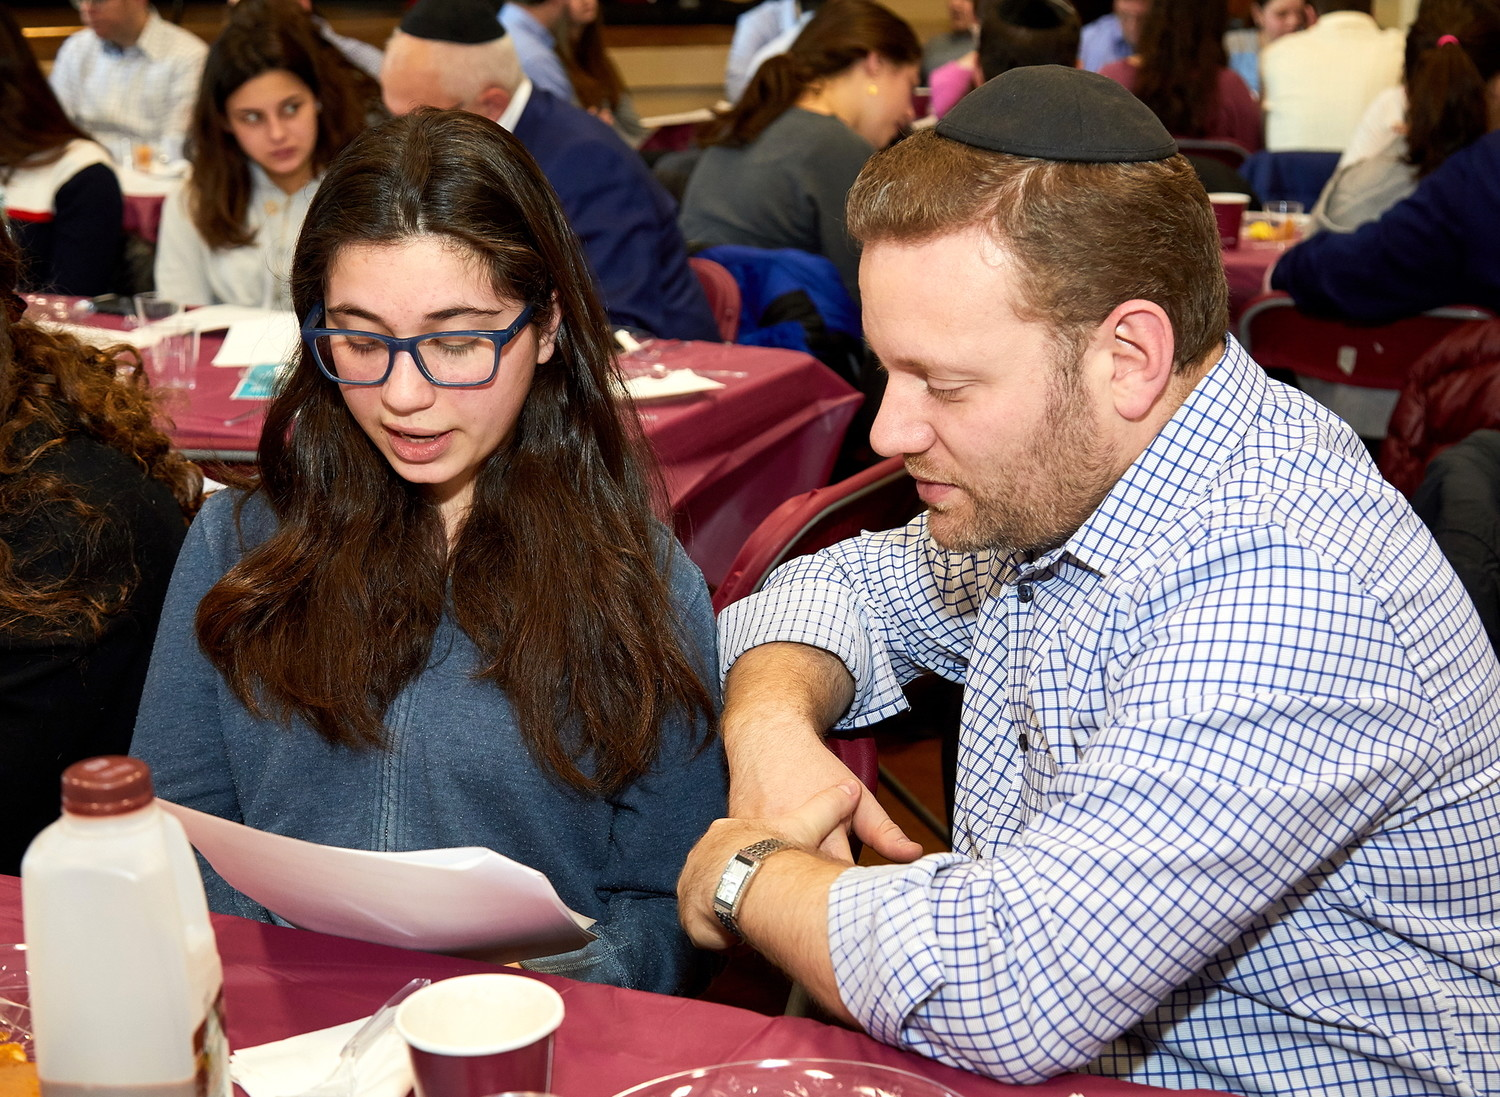 SKA ninth grader Priva Halpert studies with her father, Dr. Eliezer Halpert, at the school's father-daughter breakfast.